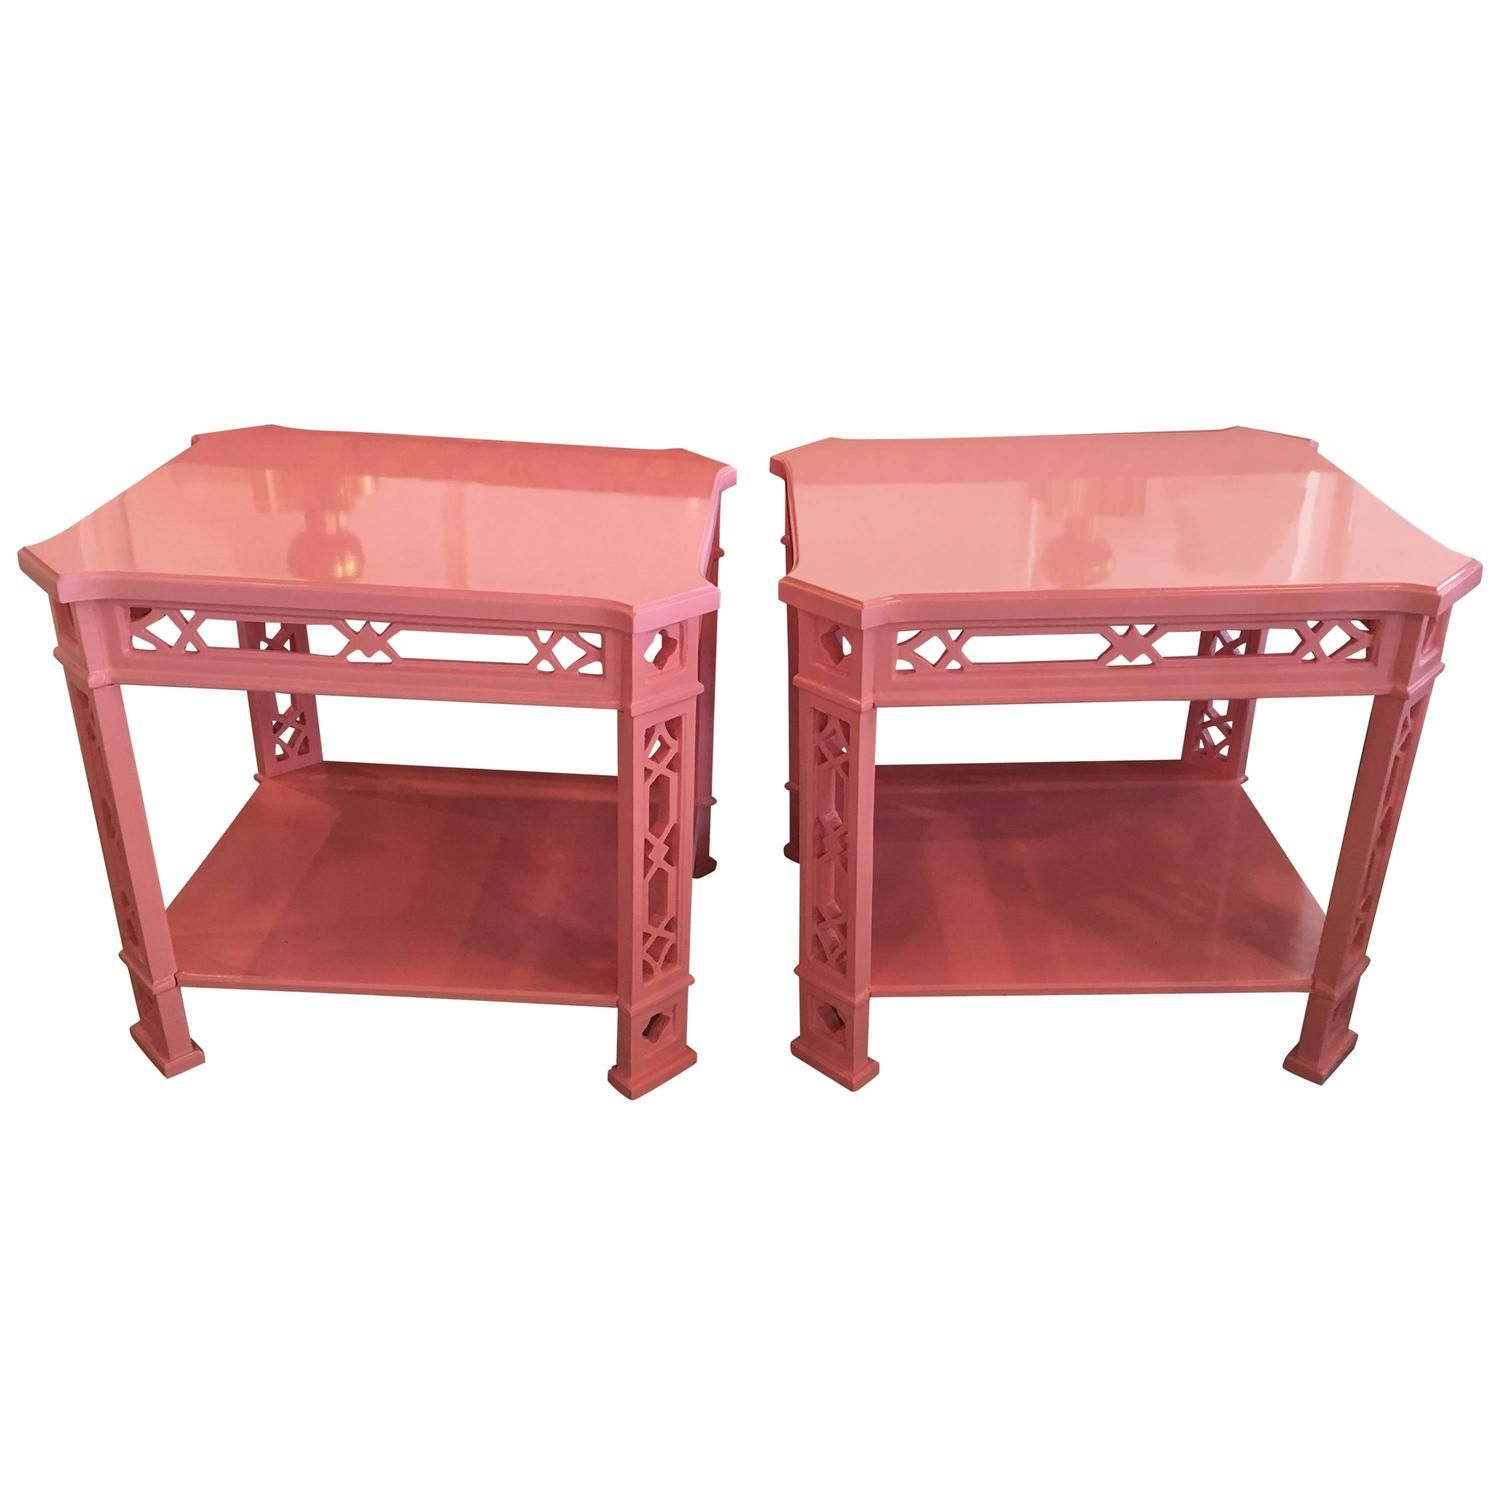 Phenomenal Pair Of Thomasville End Tables Pink End Side Lacque Gmtry Best Dining Table And Chair Ideas Images Gmtryco